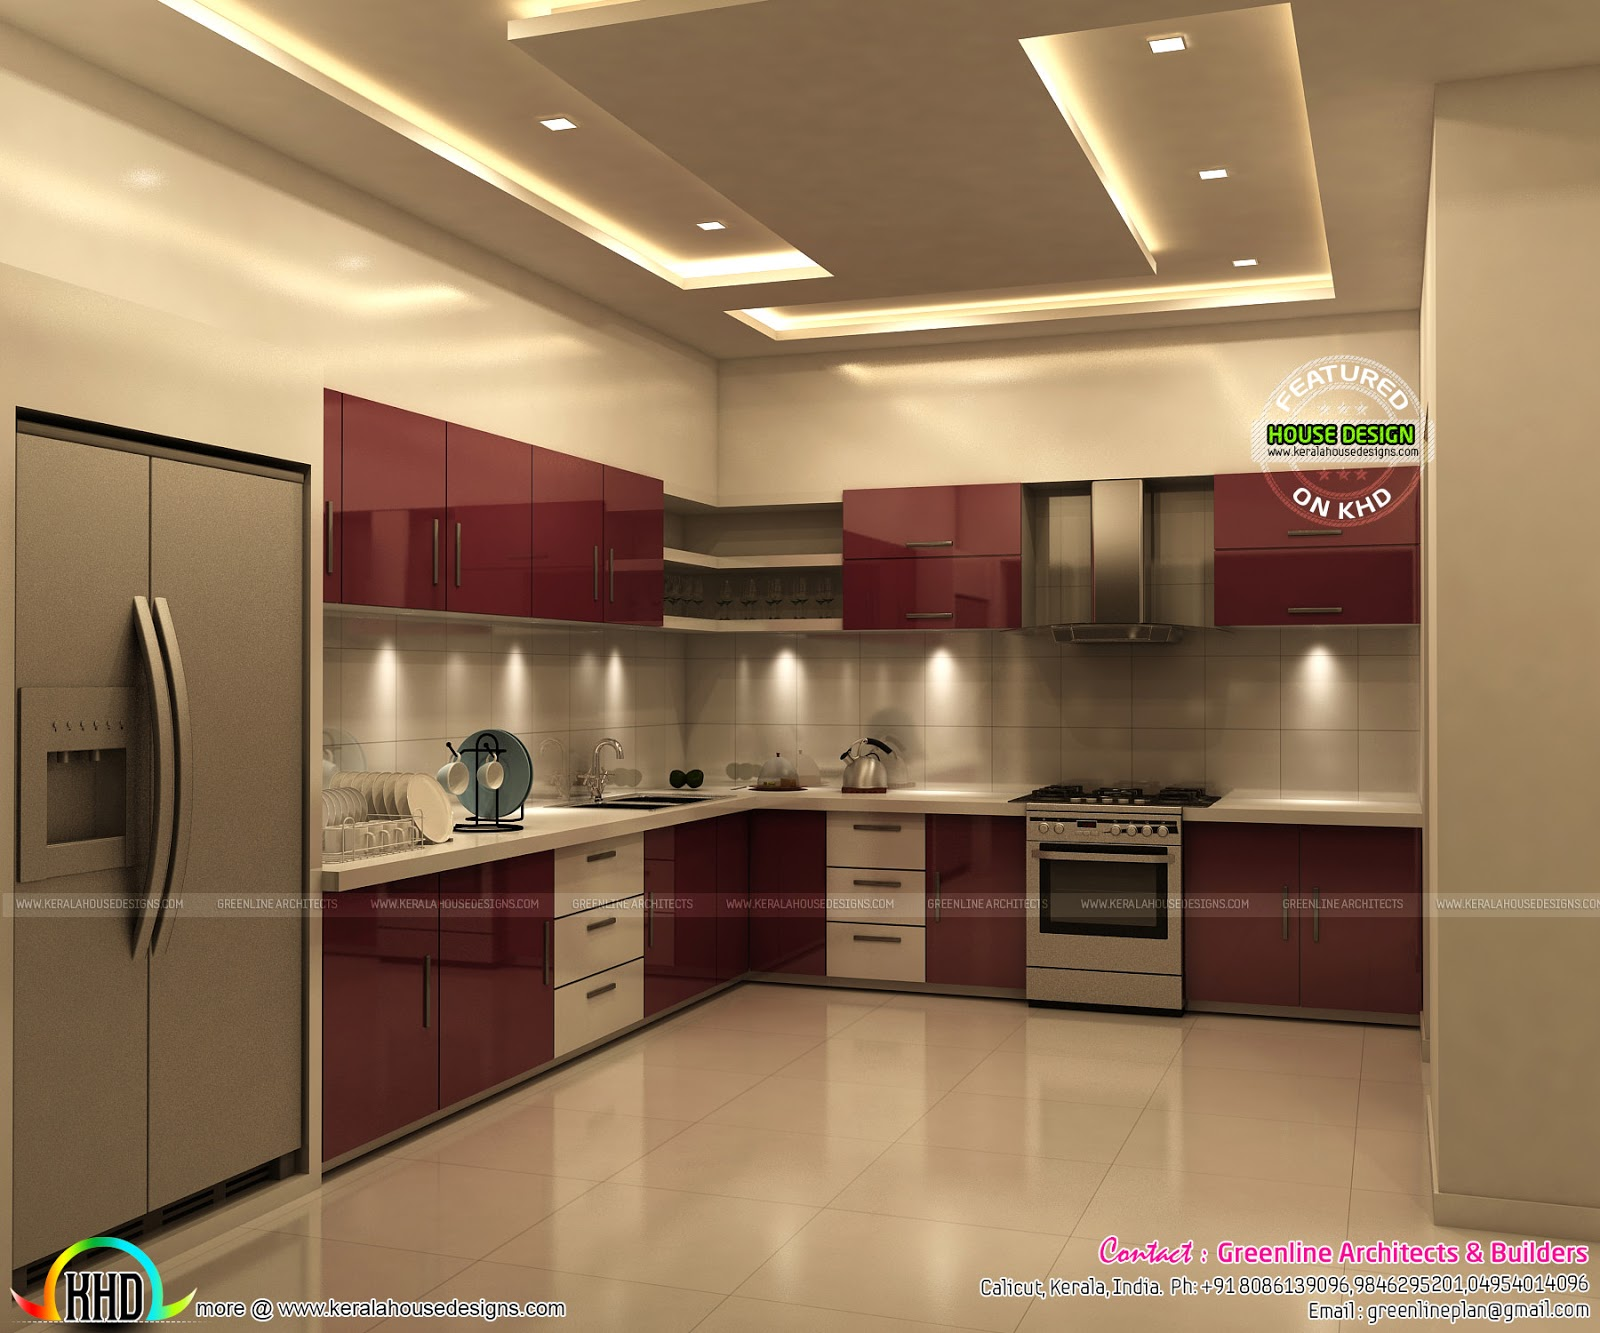 Superb Kitchen And Bedroom Interiors Kerala Home Design: kitchen interior design